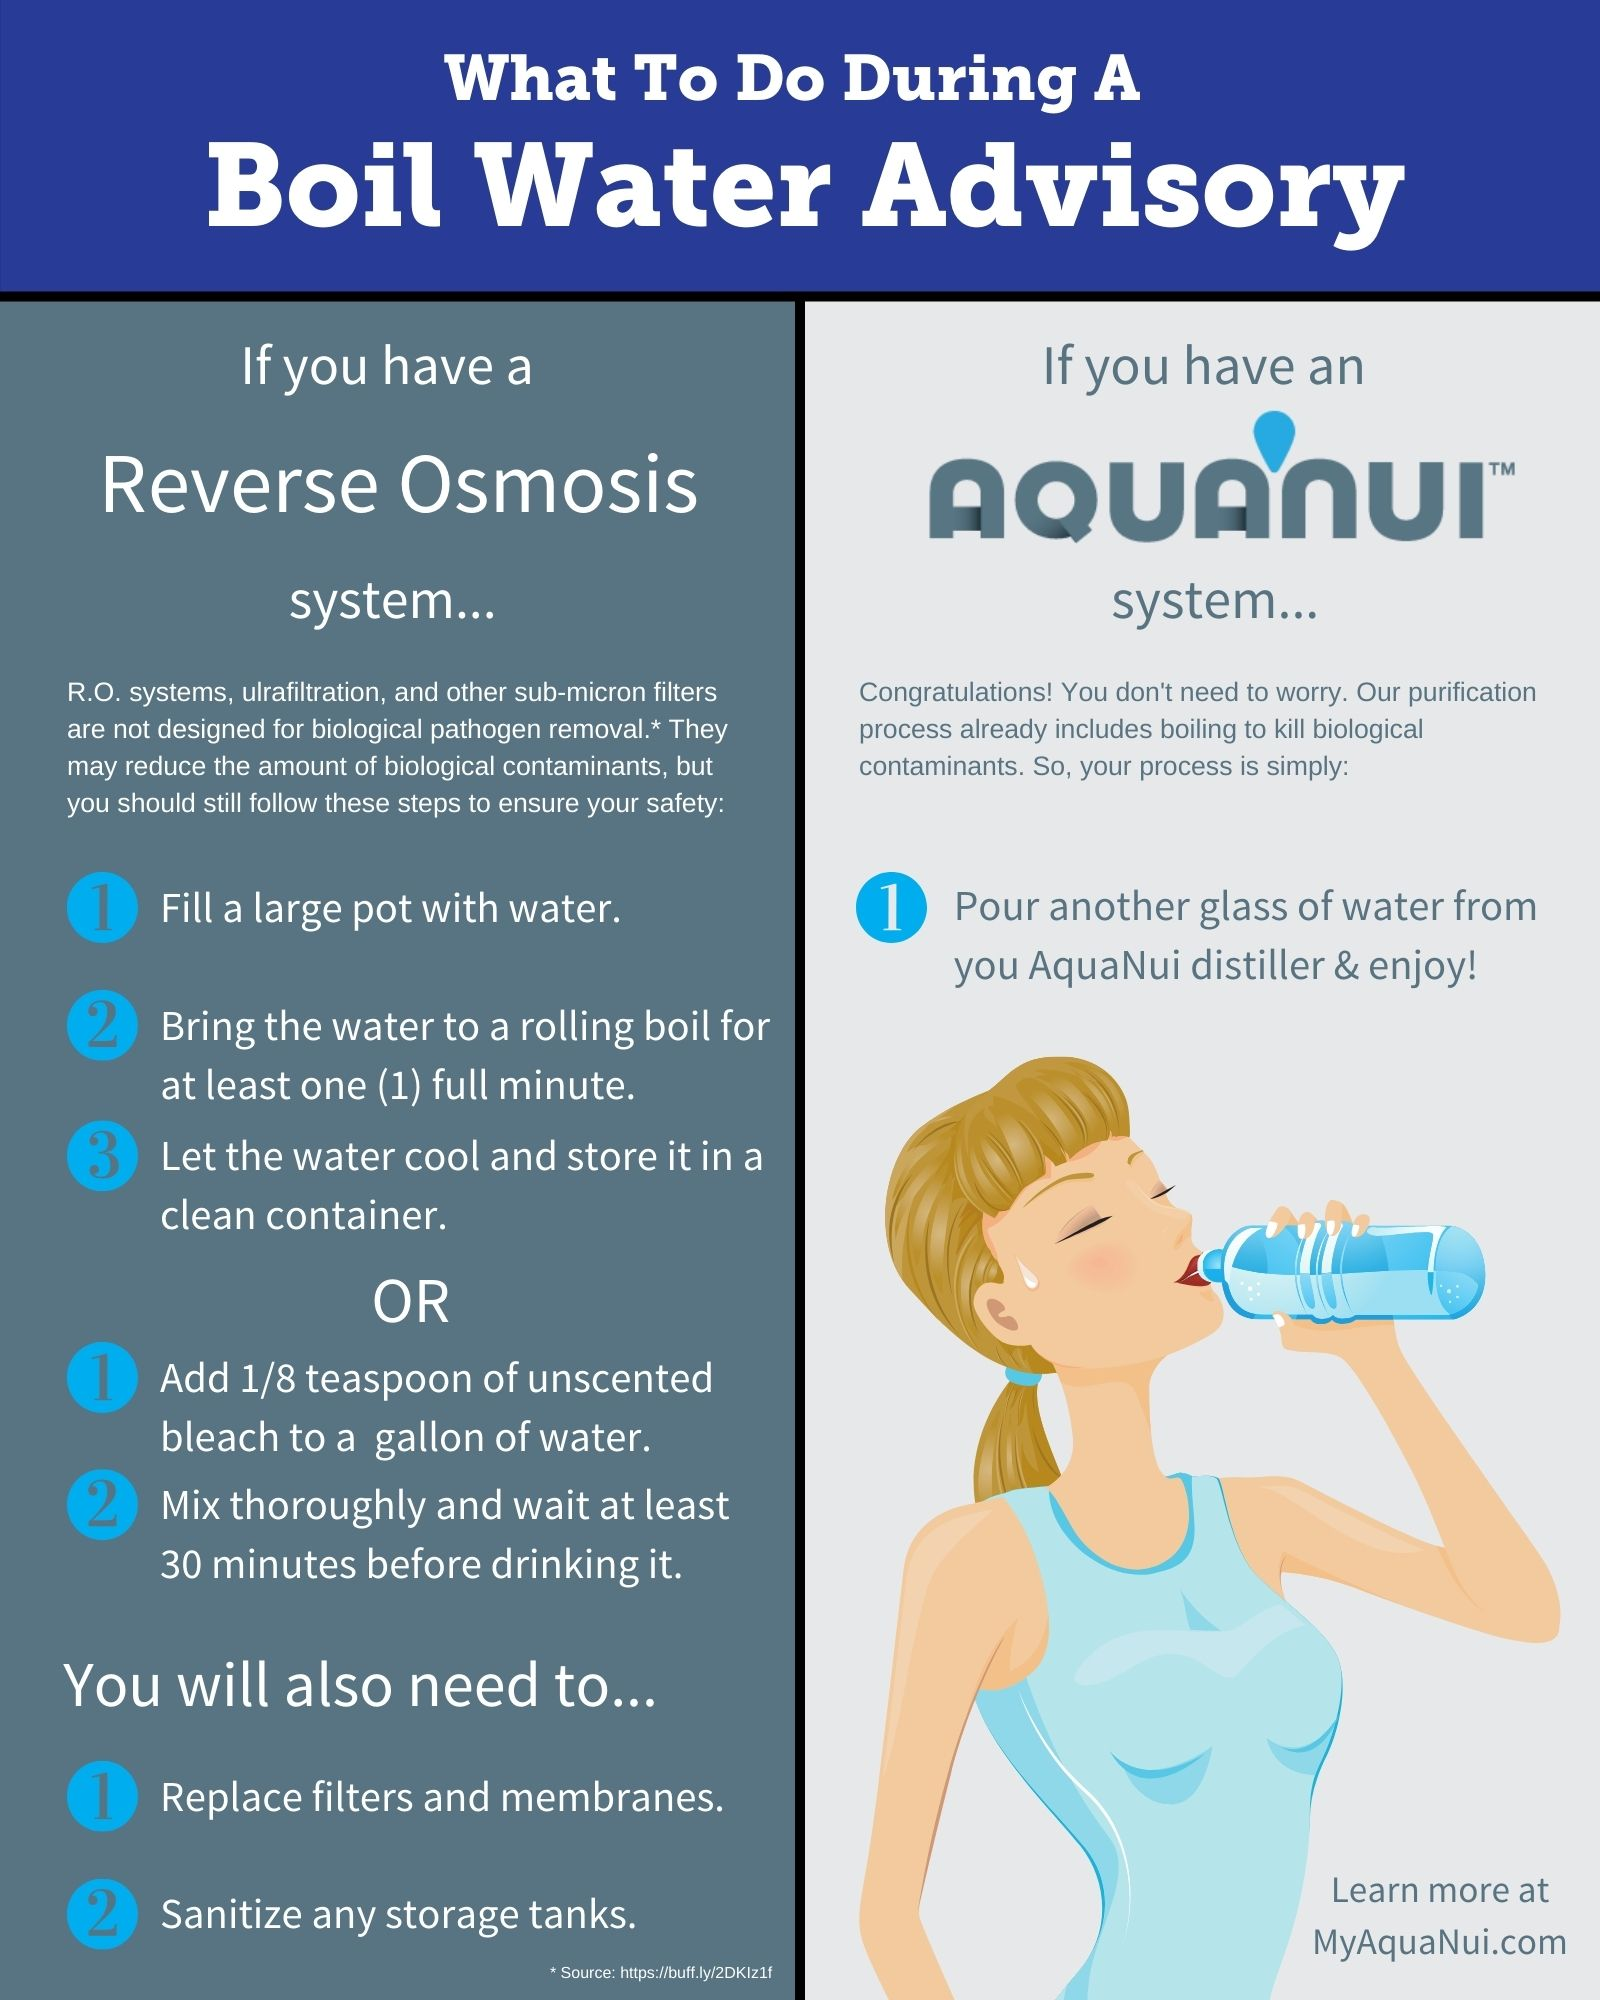 AquaNui - What To Do During A Boil Water Advisory